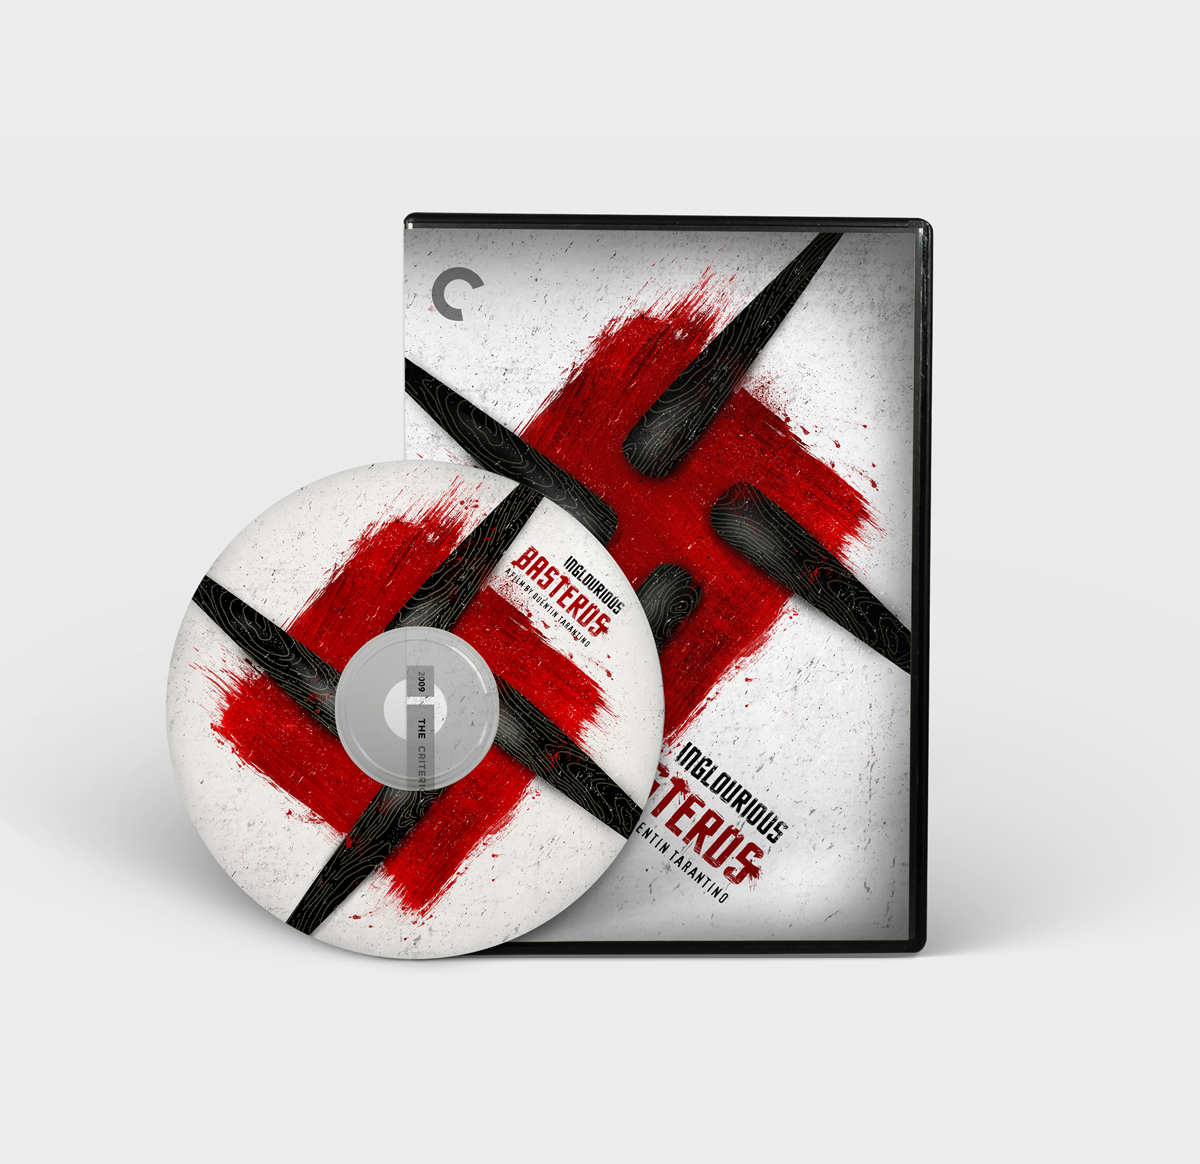 Criterion-Covers-inglourious-basterds-disk-Thanh-Nguyen-design